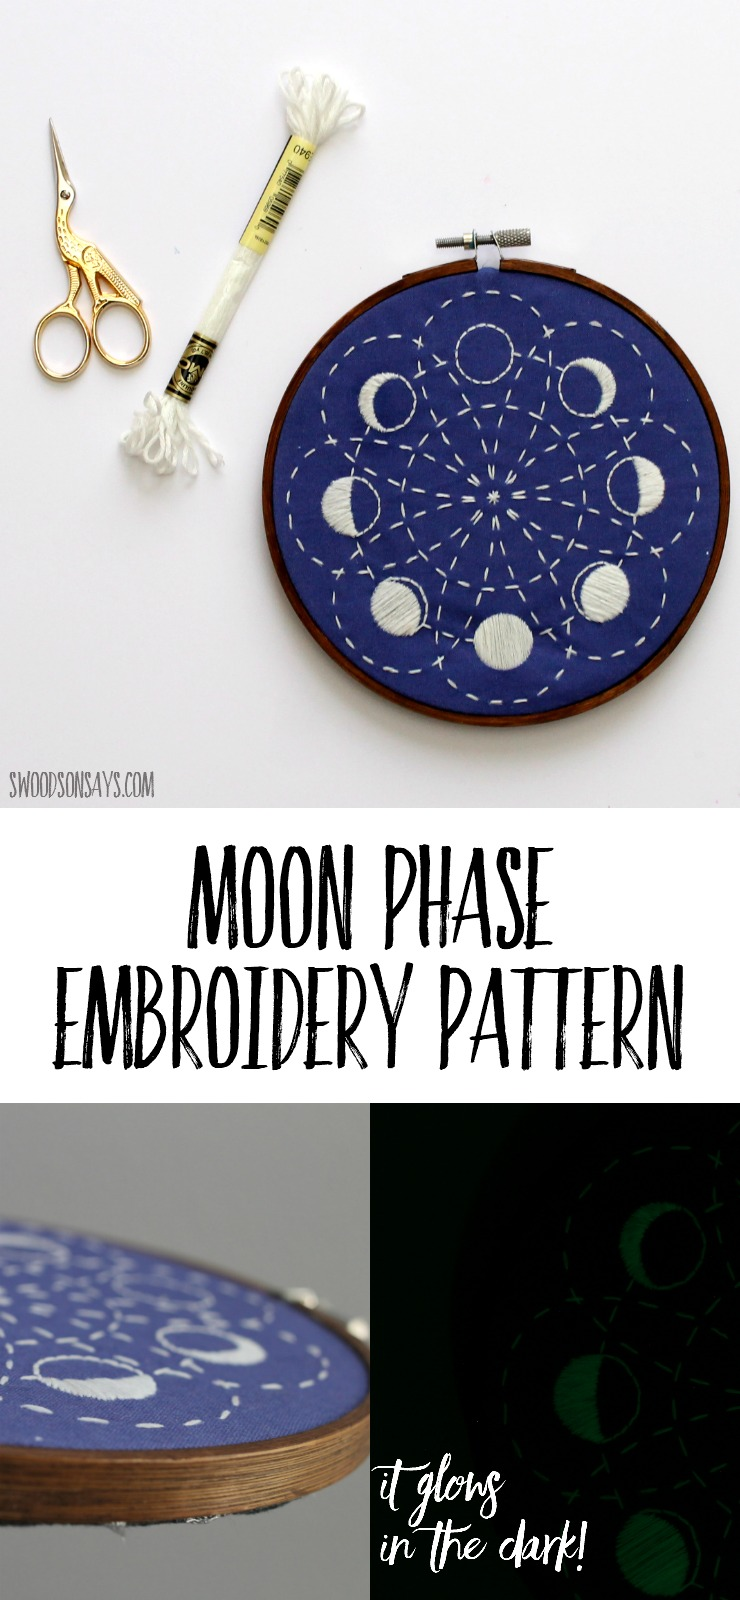 Check out this beautiful moon embroidery design that shows the lunar cycle! Sashiko stitching and simple satin stitches make this embroidery pattern perfect for beginners. Glow in the dark embroidery floss adds a fun surprise when the lights are off - no one expects a glow in the dark embroidery hoop! #moonembroidery #embroidery #lunarcycle #lunarphases